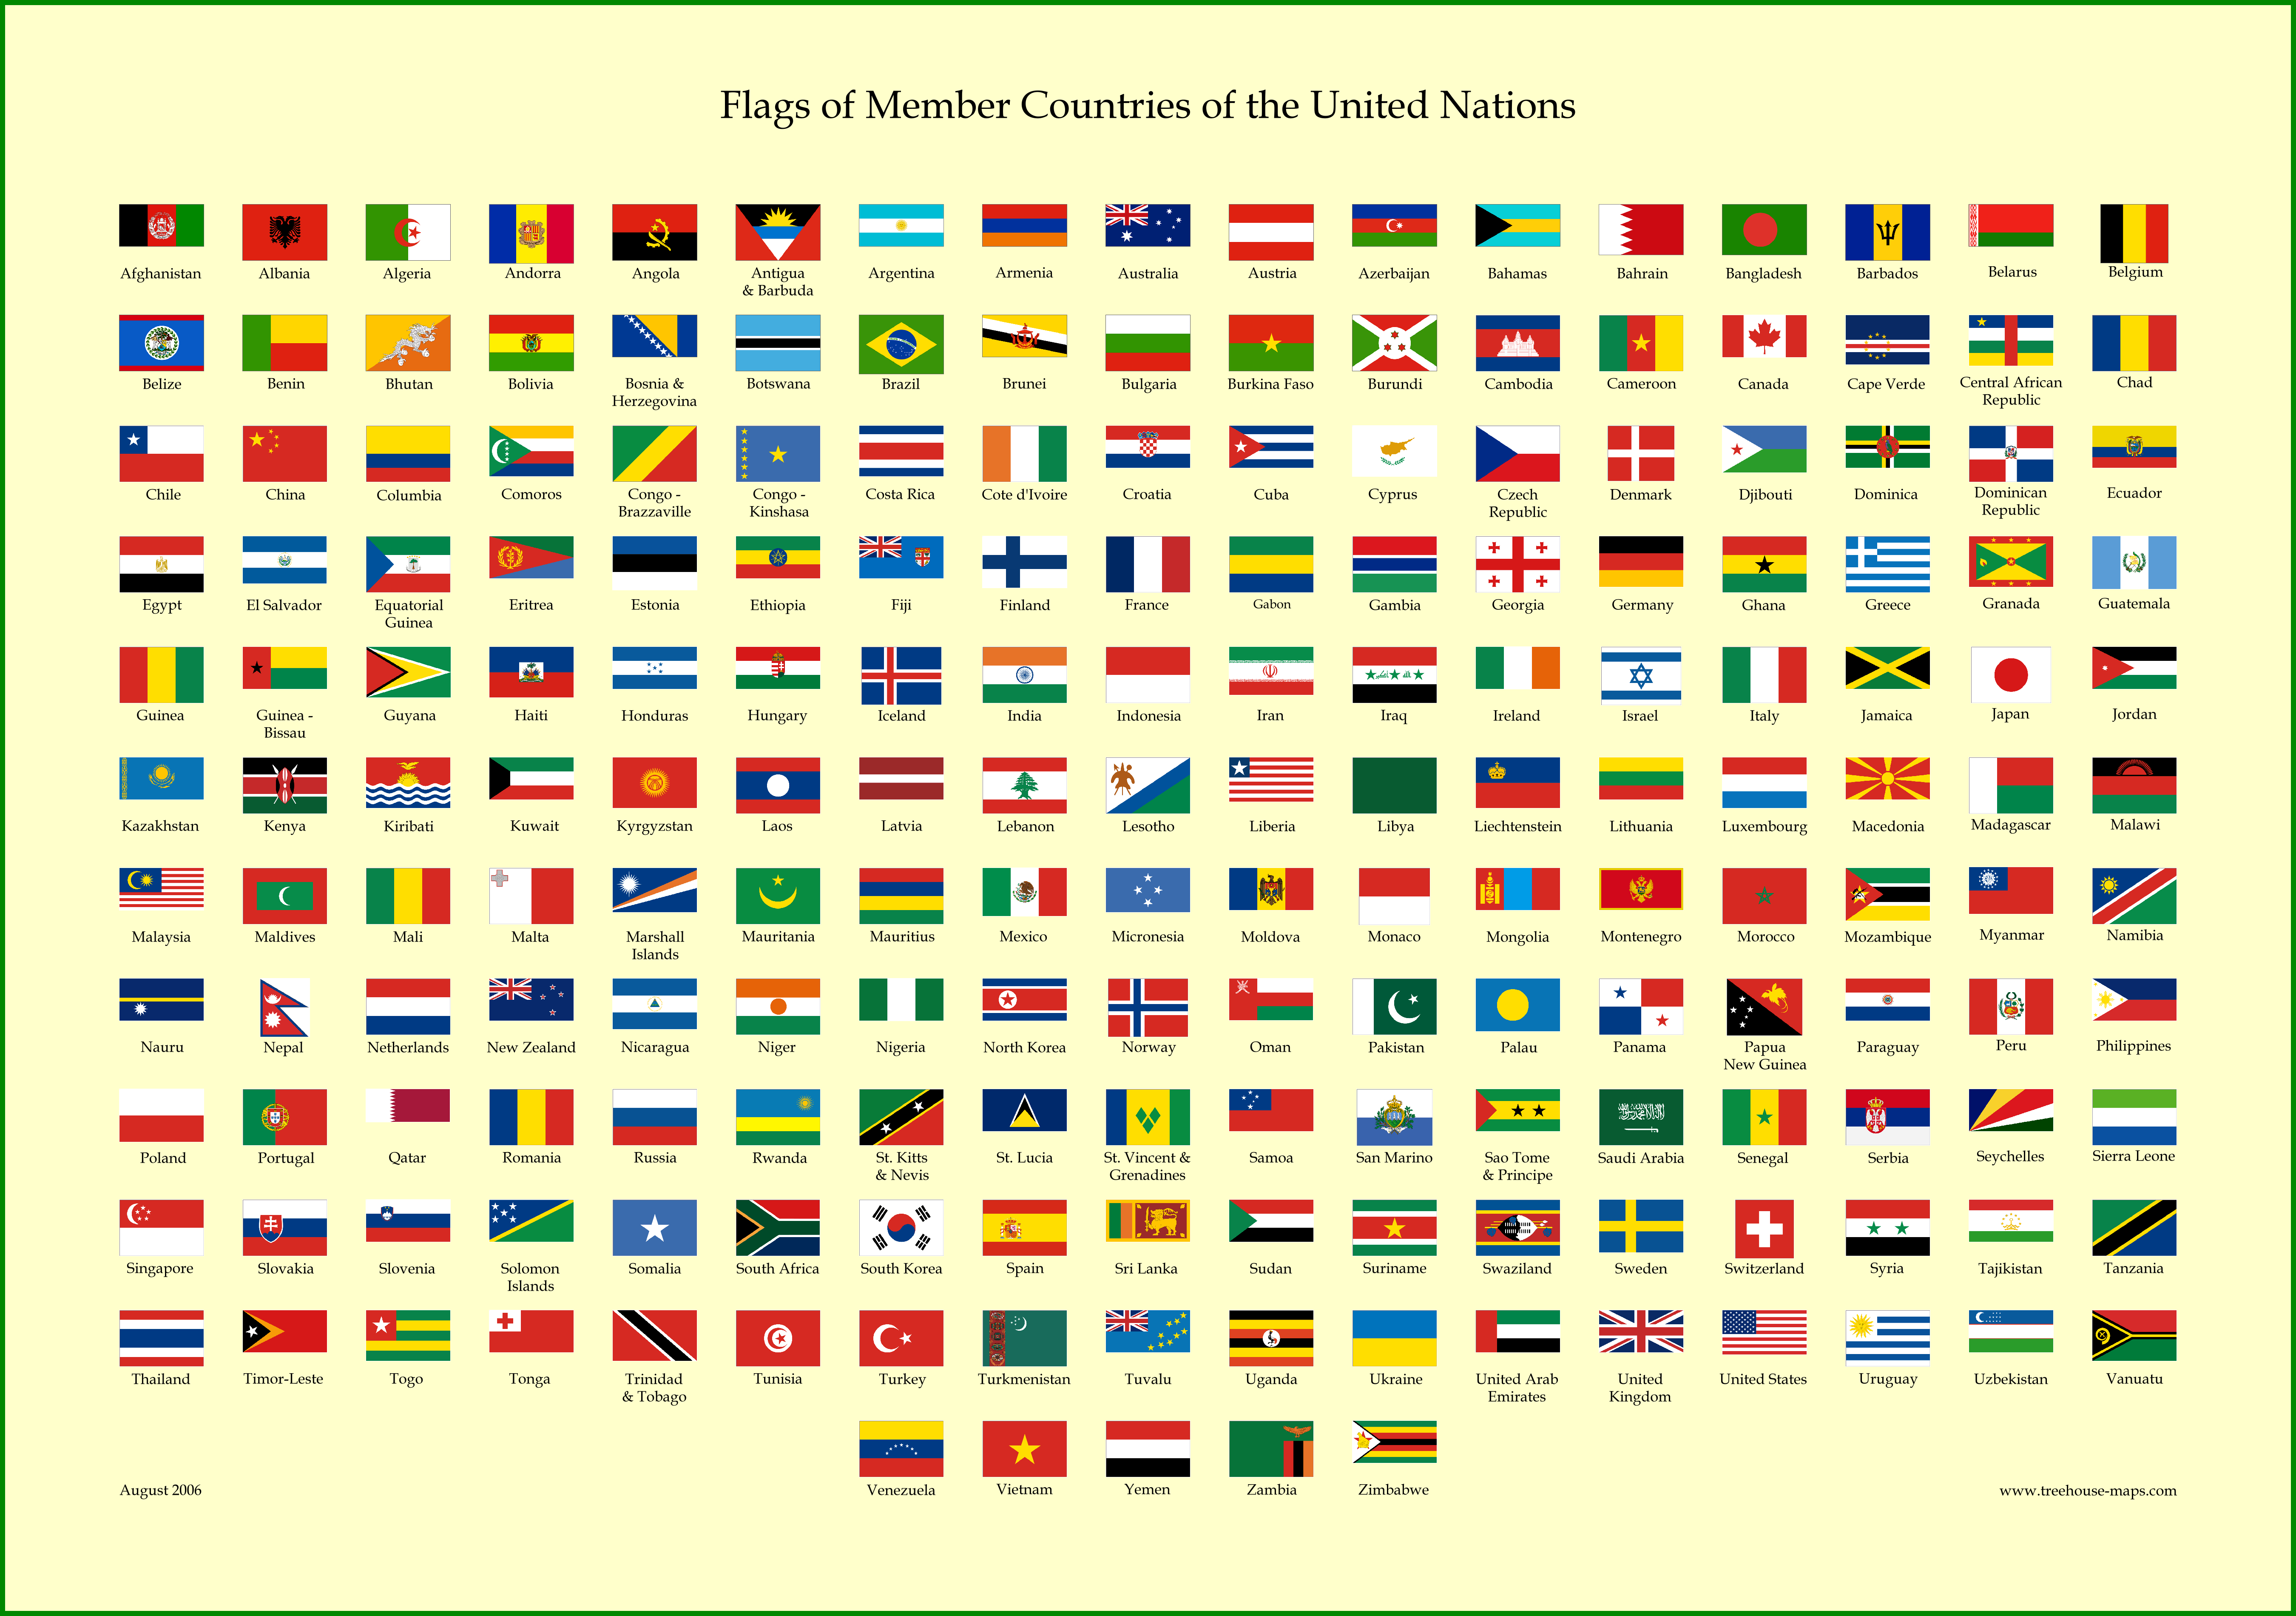 Pinchristopher Alagban On Educ | Flags Of The World, Flags Of - Free Printable Pictures Of Flags Of The World